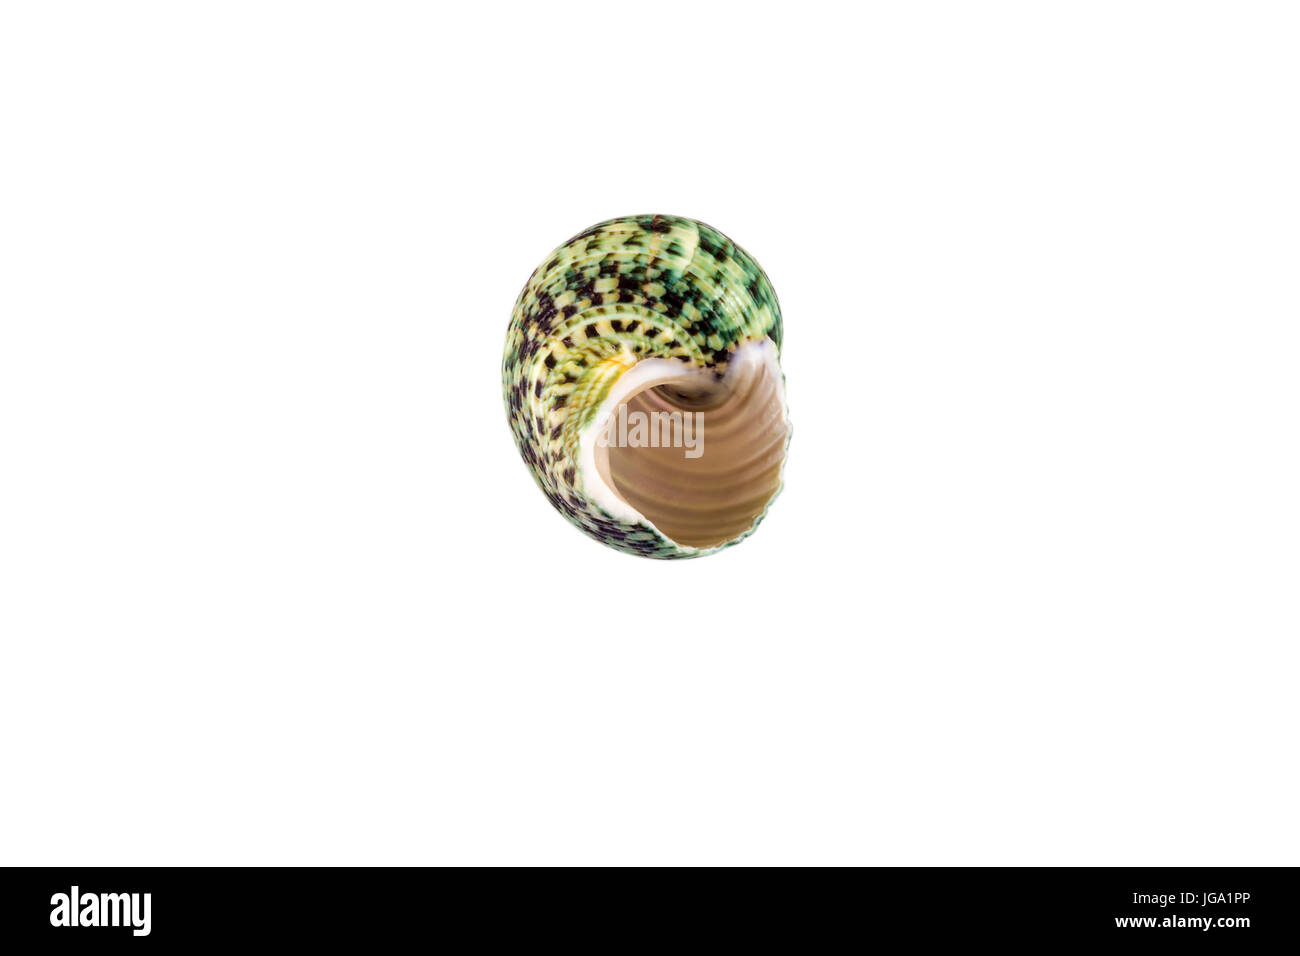 Beautiful sea shell,Polinices lacteus, isolated on white background view from the top .For posters, sites, business - Stock Image